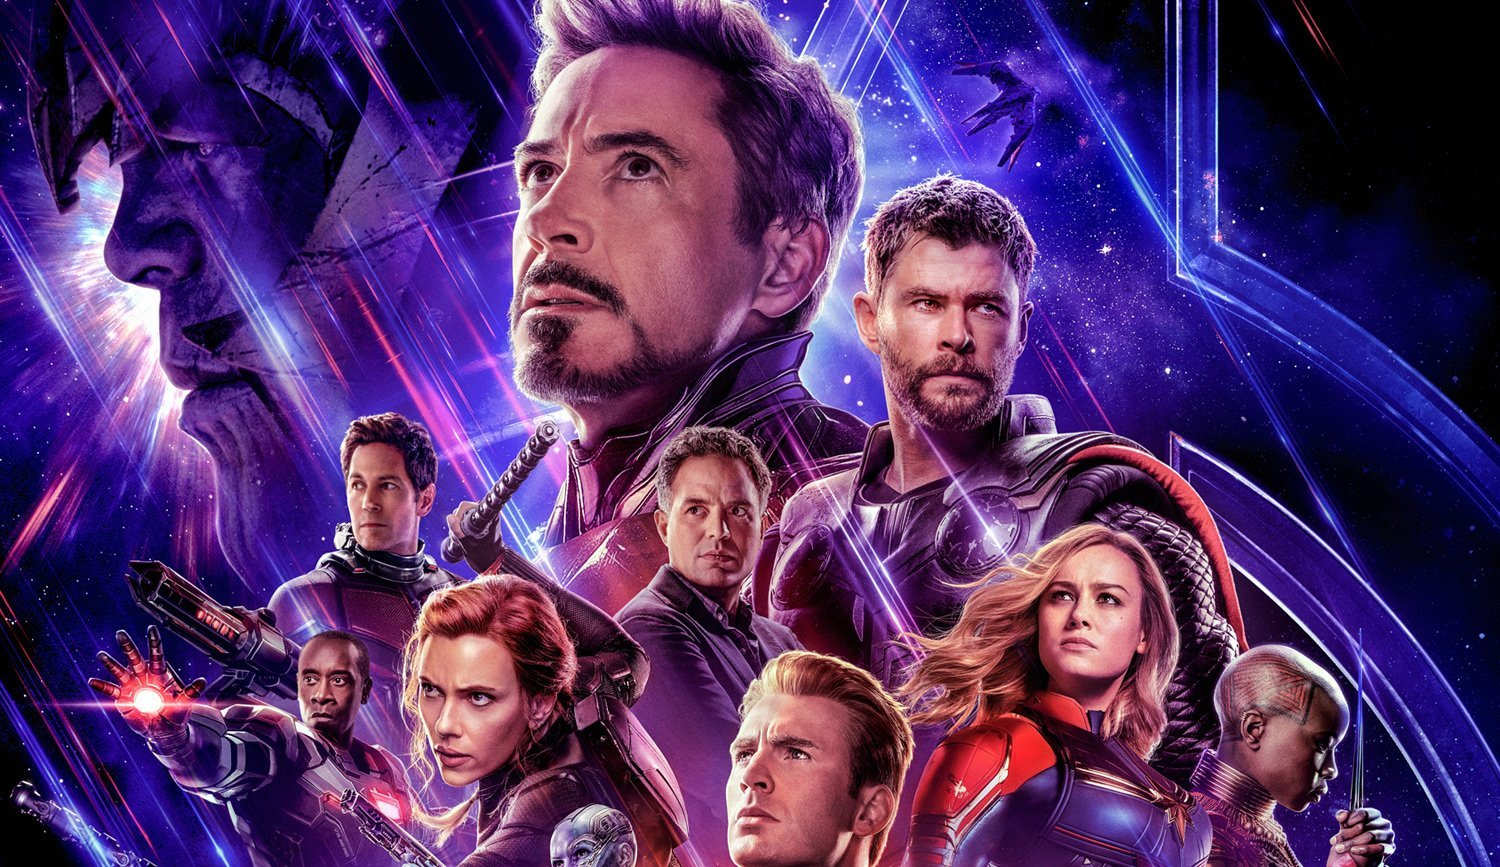 'Avengers: Endgame' Official Trailer Features Captain Marvel – Watch Now!